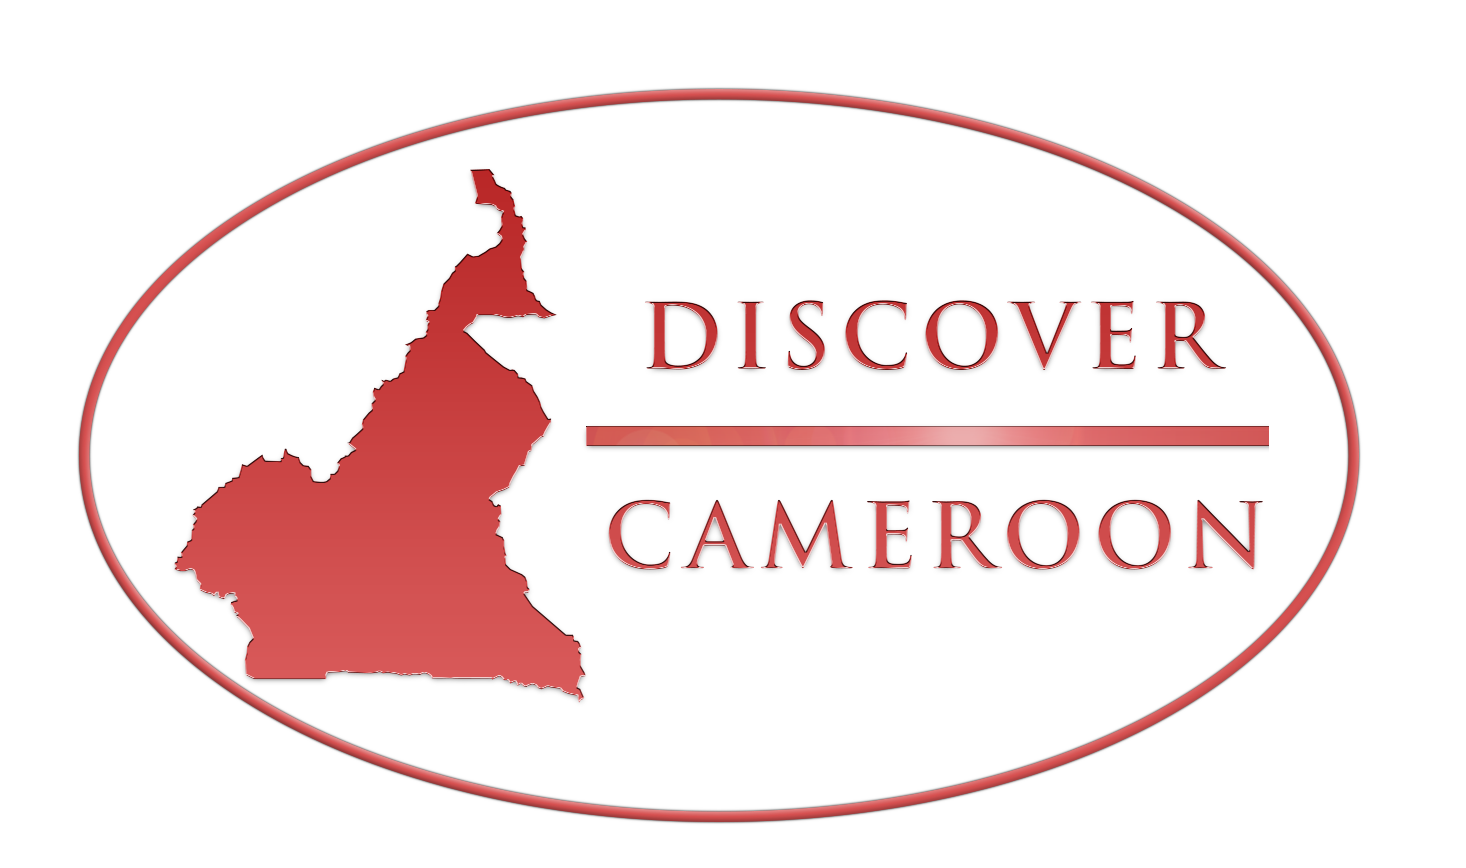 Discover Cameroon